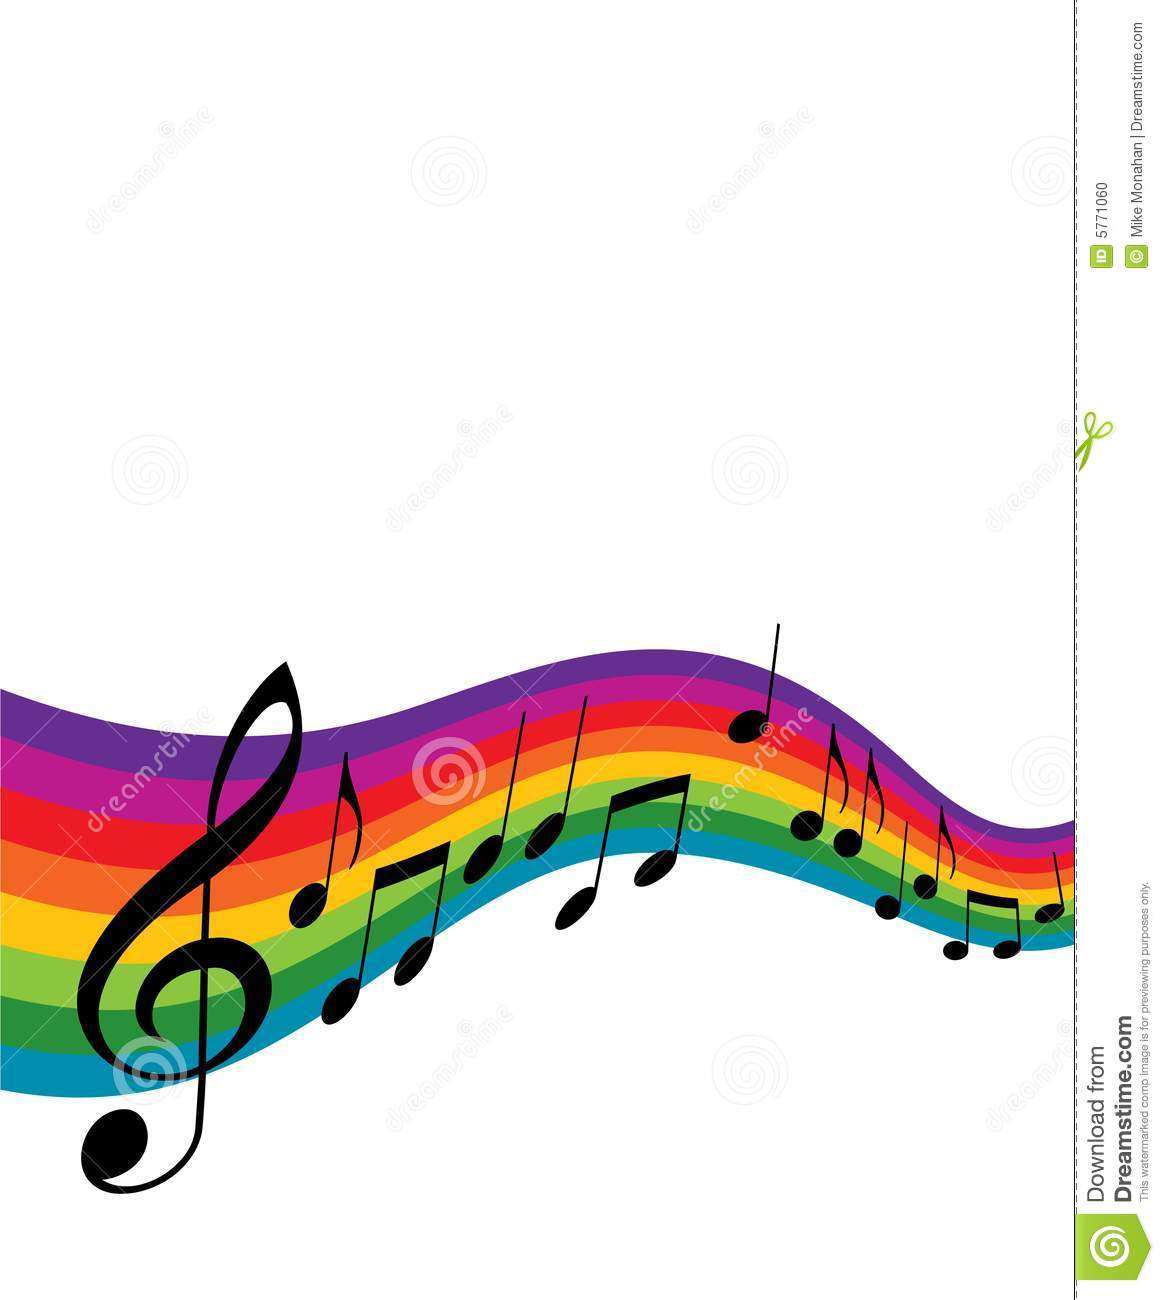 hight resolution of 1164x1300 colorful music note border clip art clipart panda free clipart